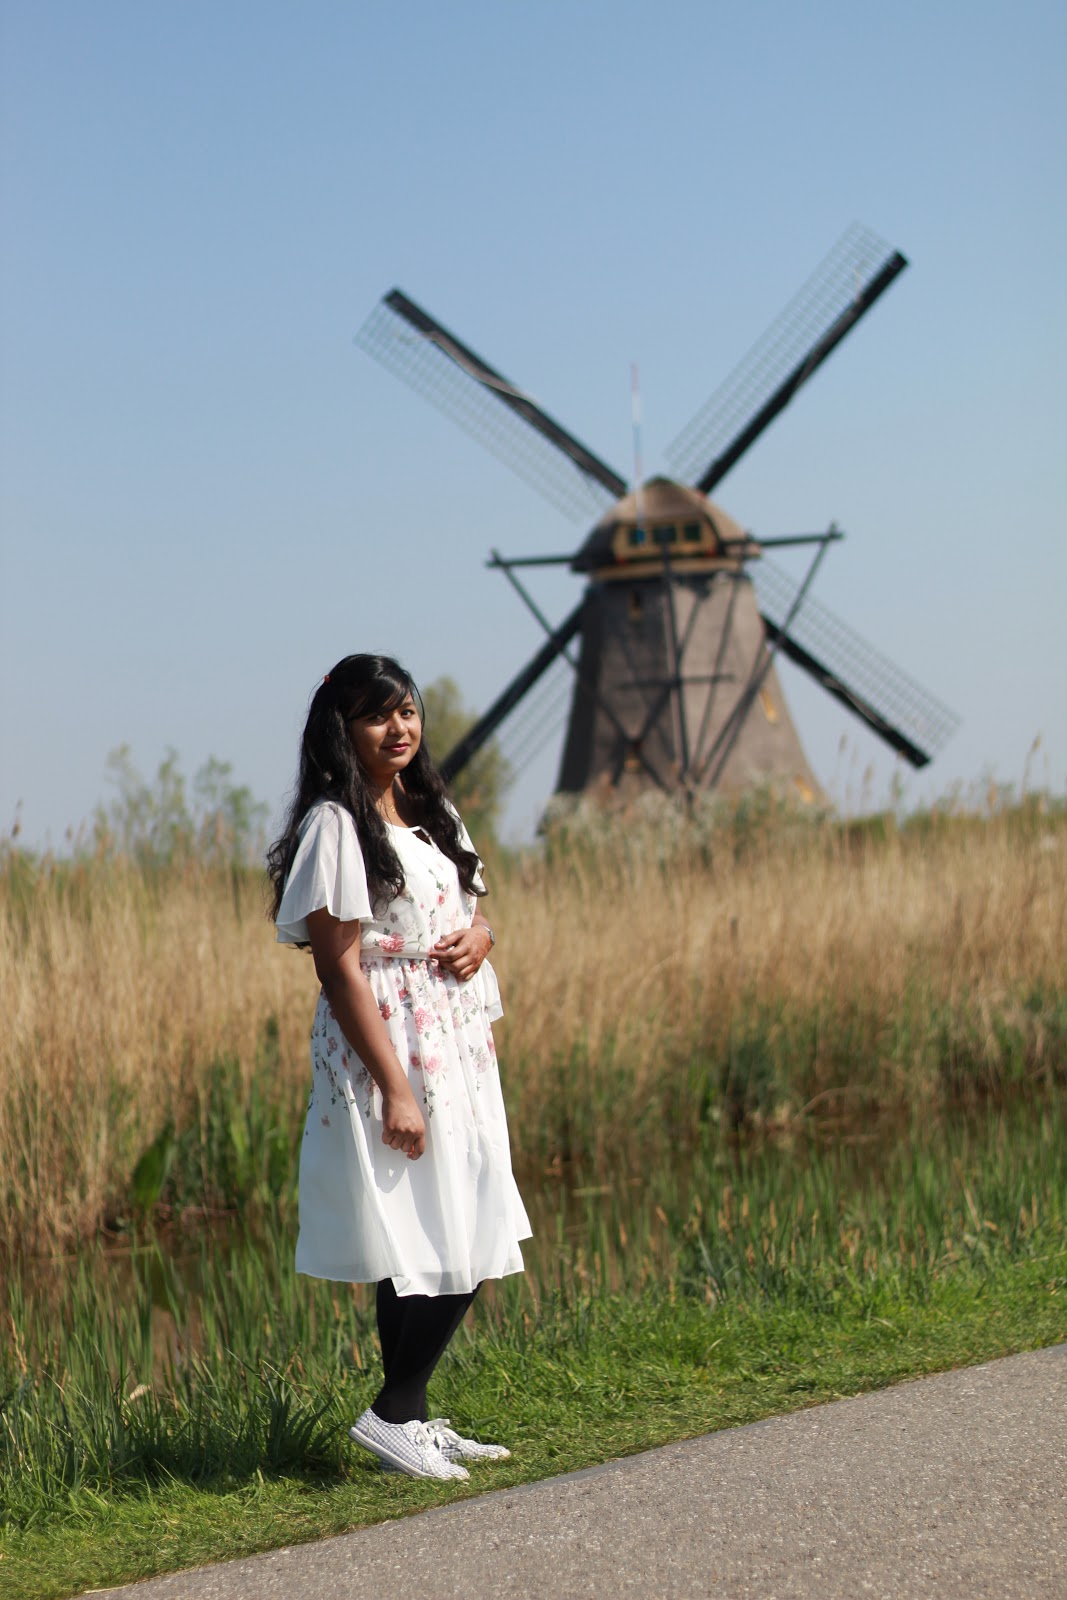 Windmills and nature are part of living in the Netherlands.